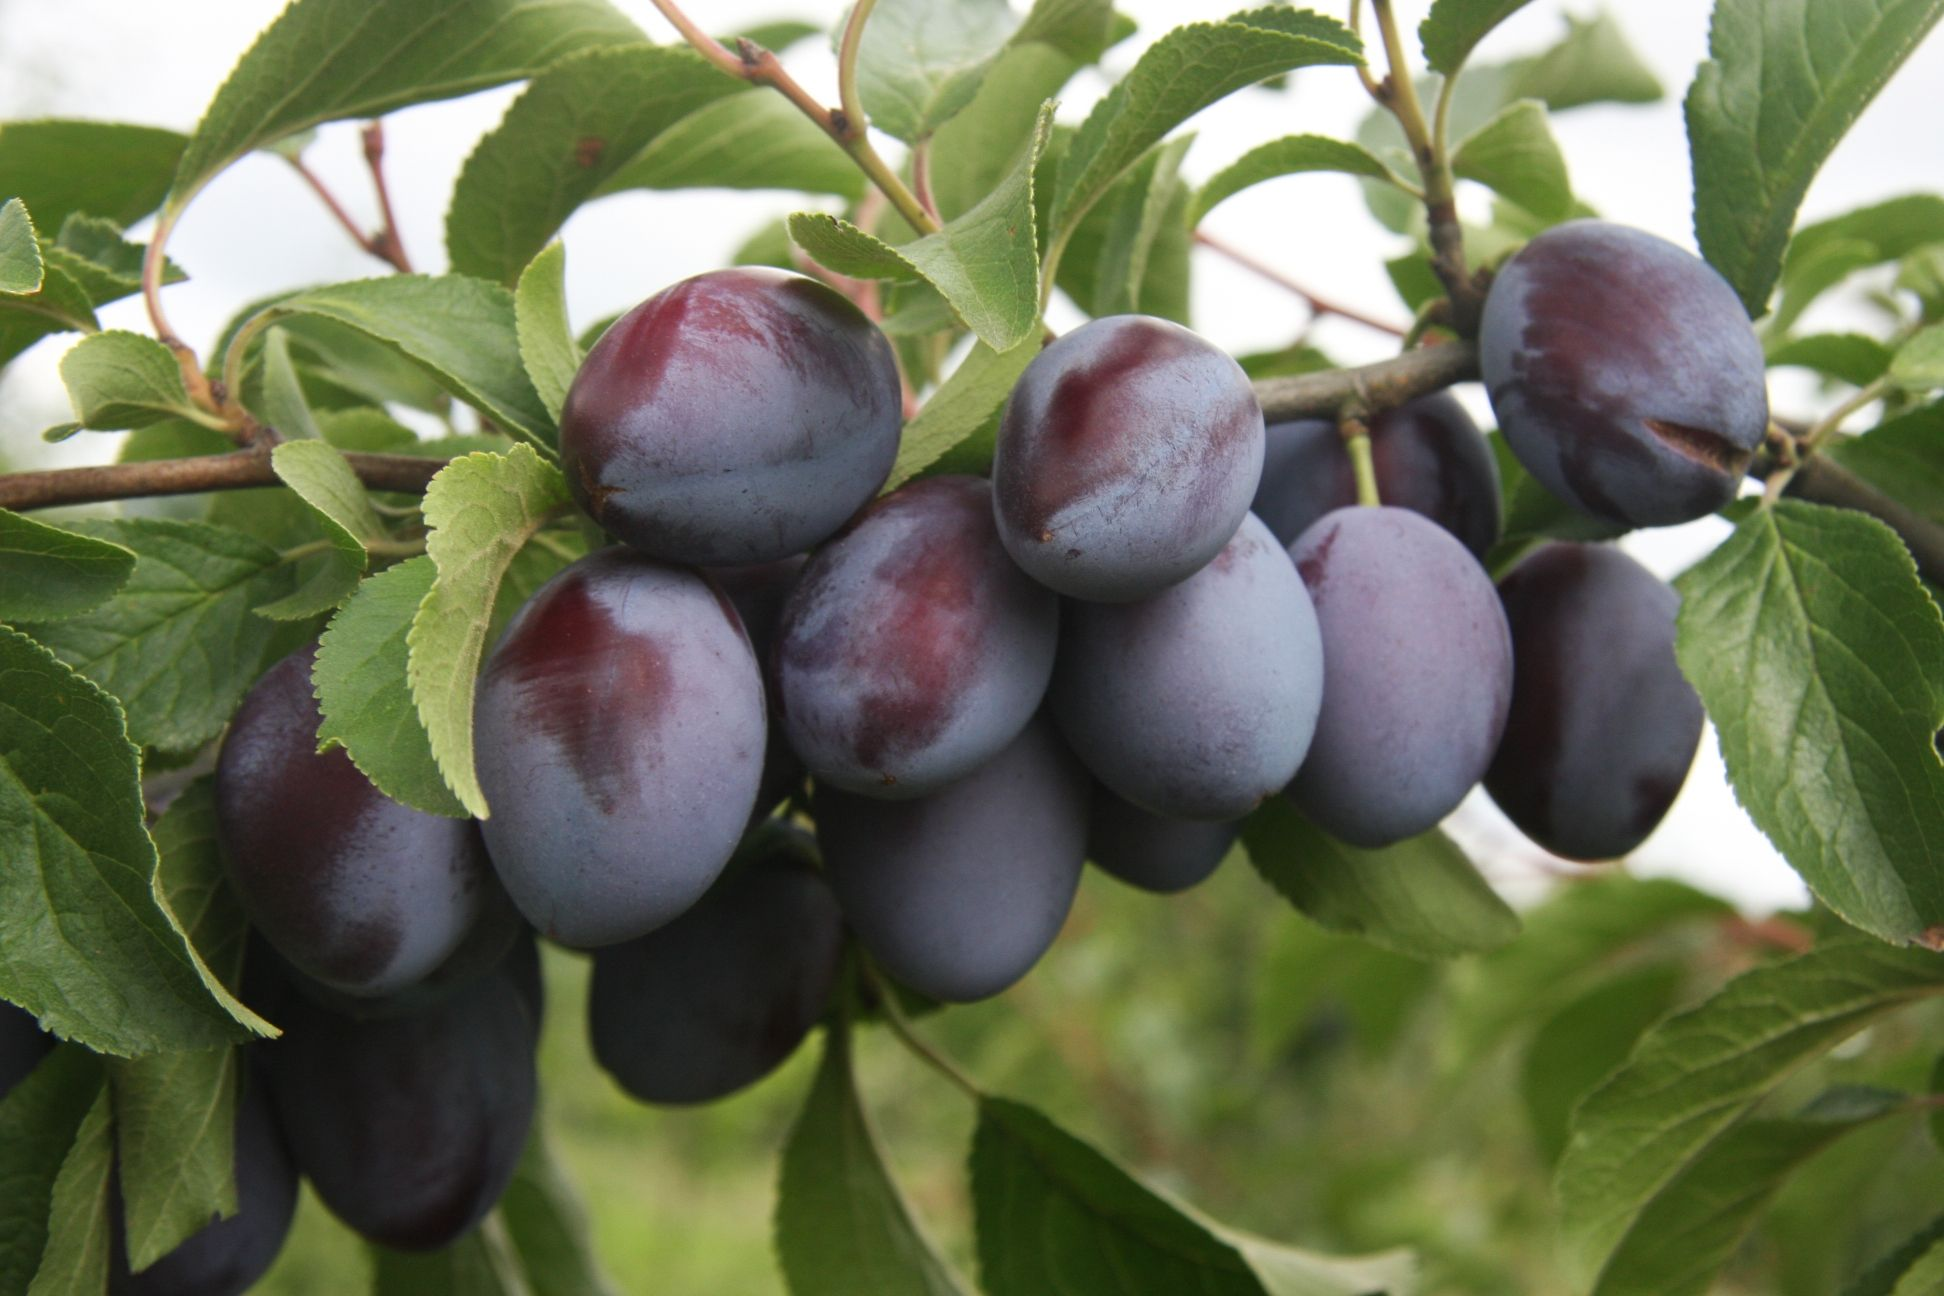 Damson Plum Small Dark Purple Black Plums With Green Flesh And A